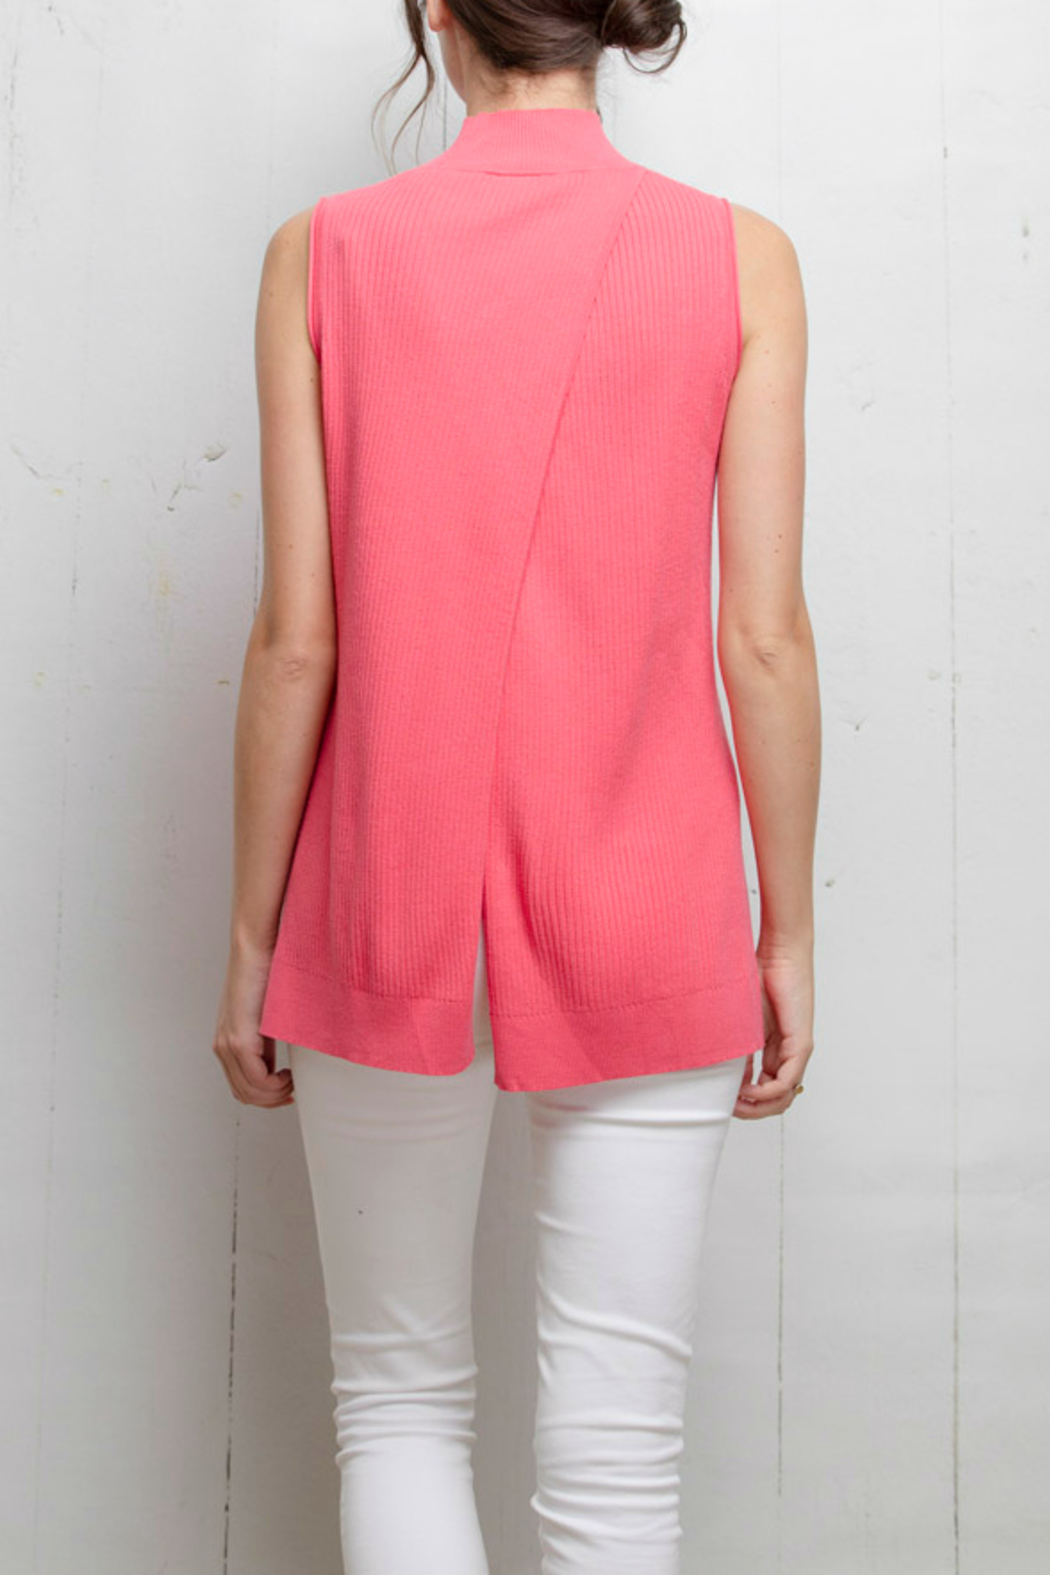 Tyler Boe Pink Sleeveless Sweater Top - Back Cropped Image